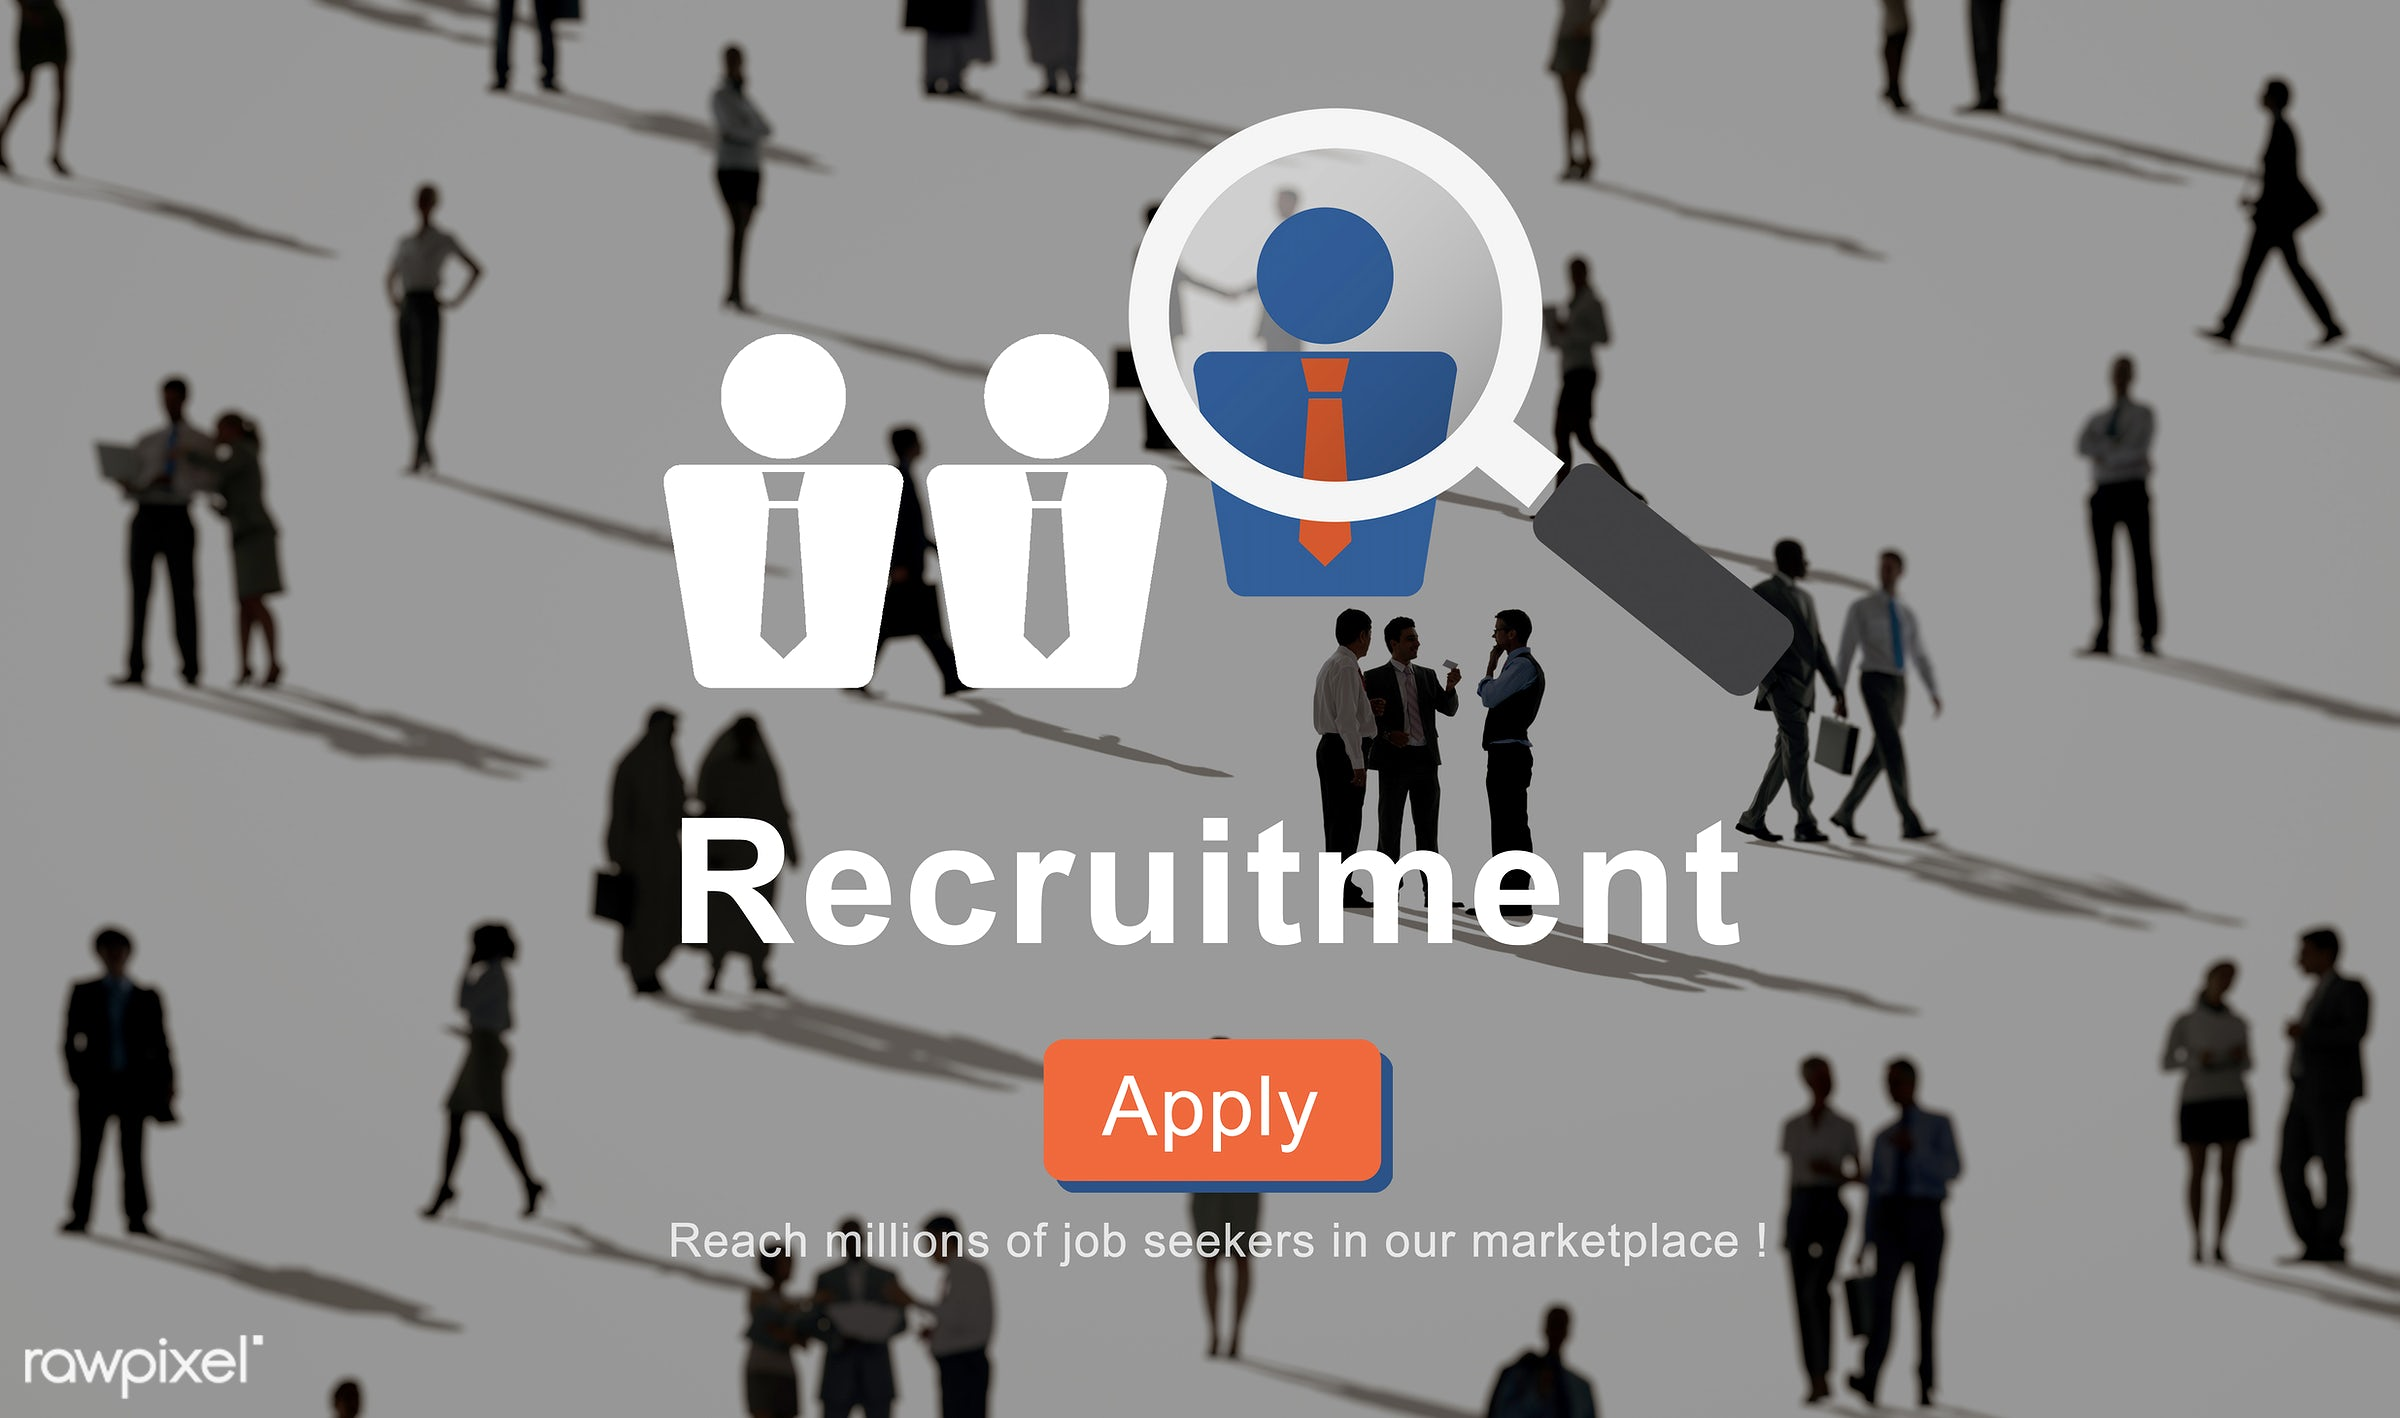 Business recruitment - apply, business, business people, communication, community, crowd, discussion, employee, employment,...